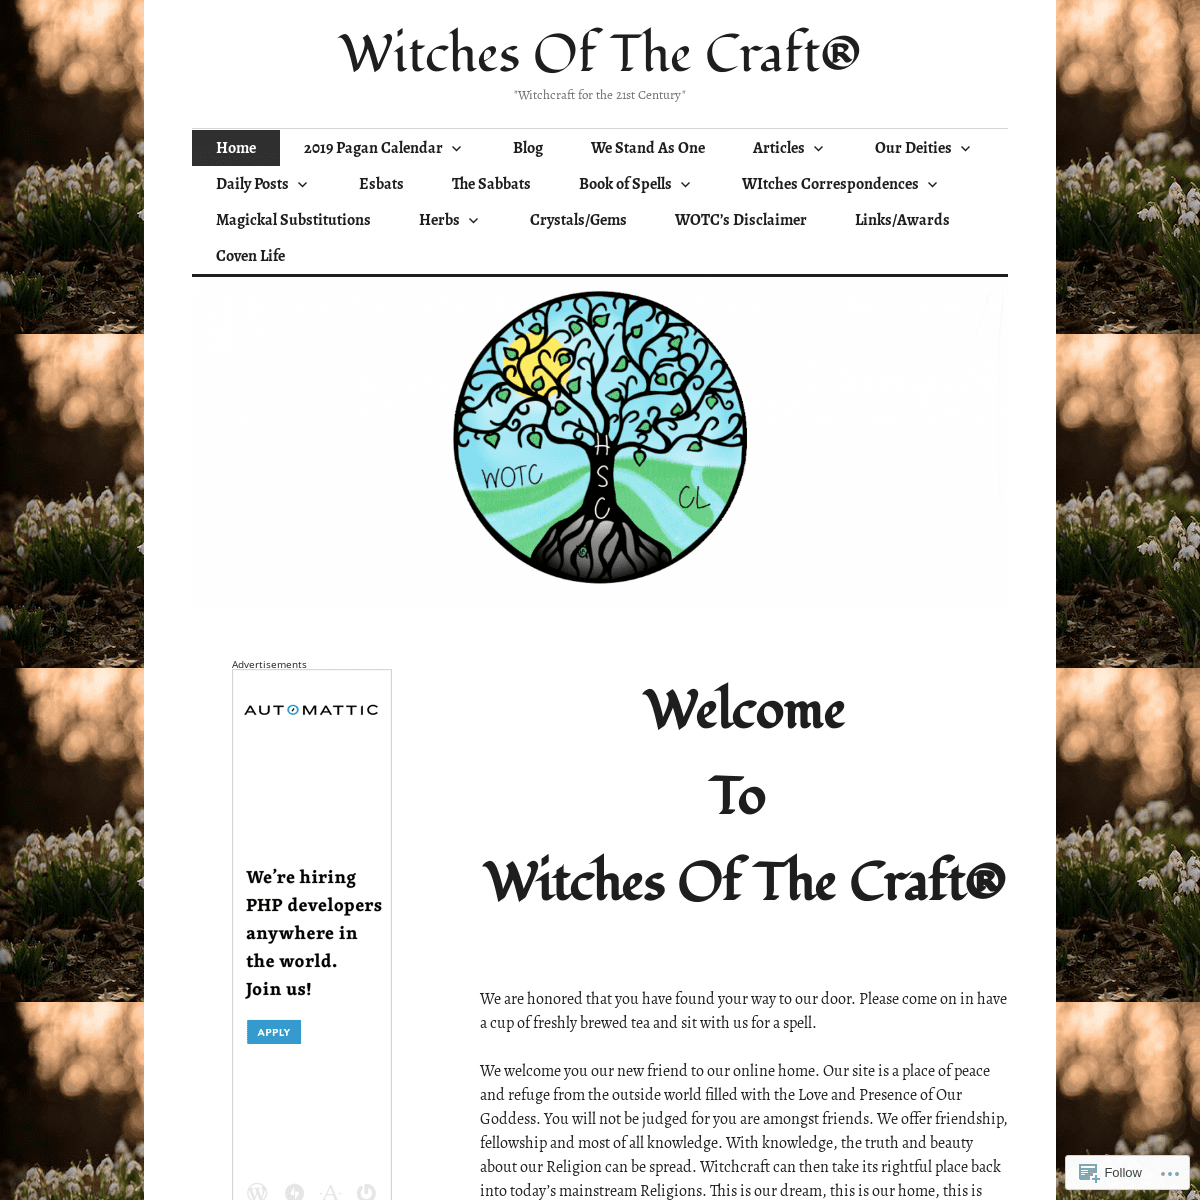 Witches Of The Craft® – -Witchcraft for the 21st Century-